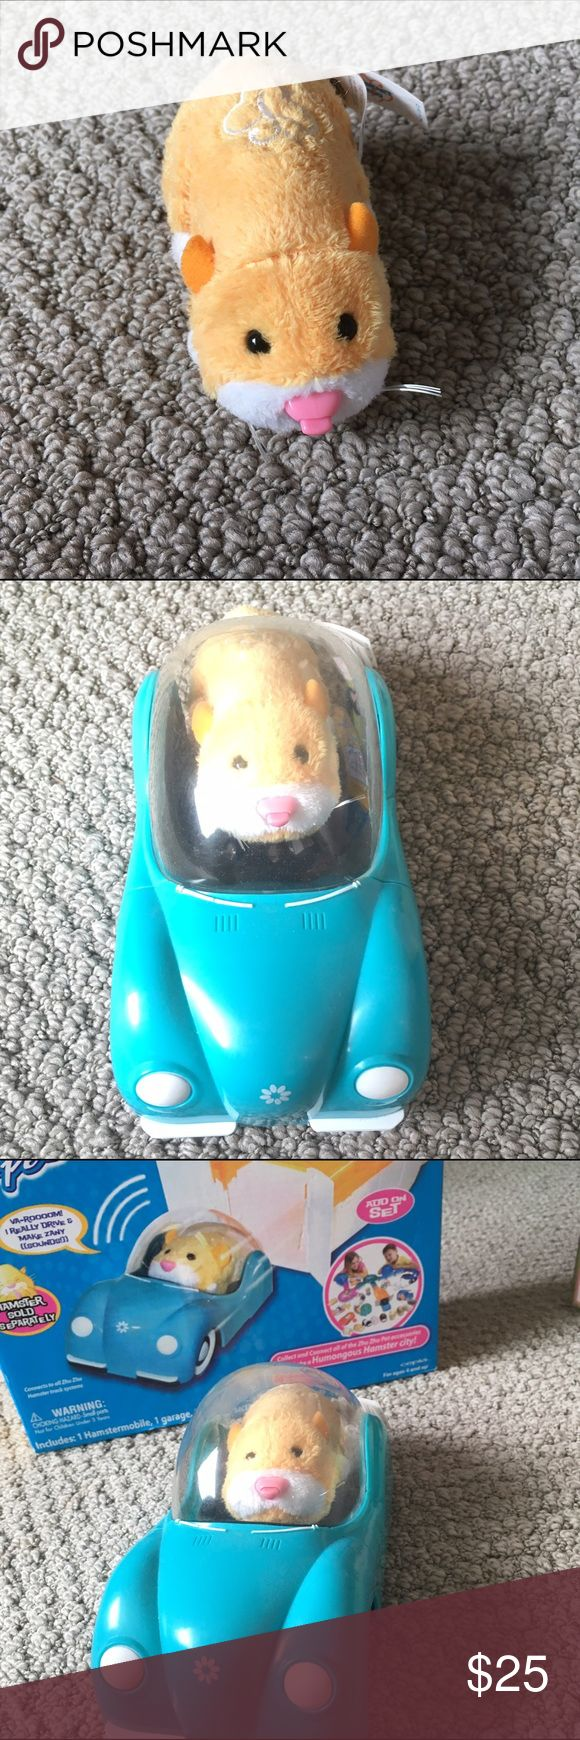 Nugget the hamster zhu zhu pet A bundle of nugget the zhu zhu hamster and ths blue hamster mobile. When you press the button on the top of nugget he moves across the floor. He also makes many zany sounds. A great gift for the holiday season ☃️❄️ Other